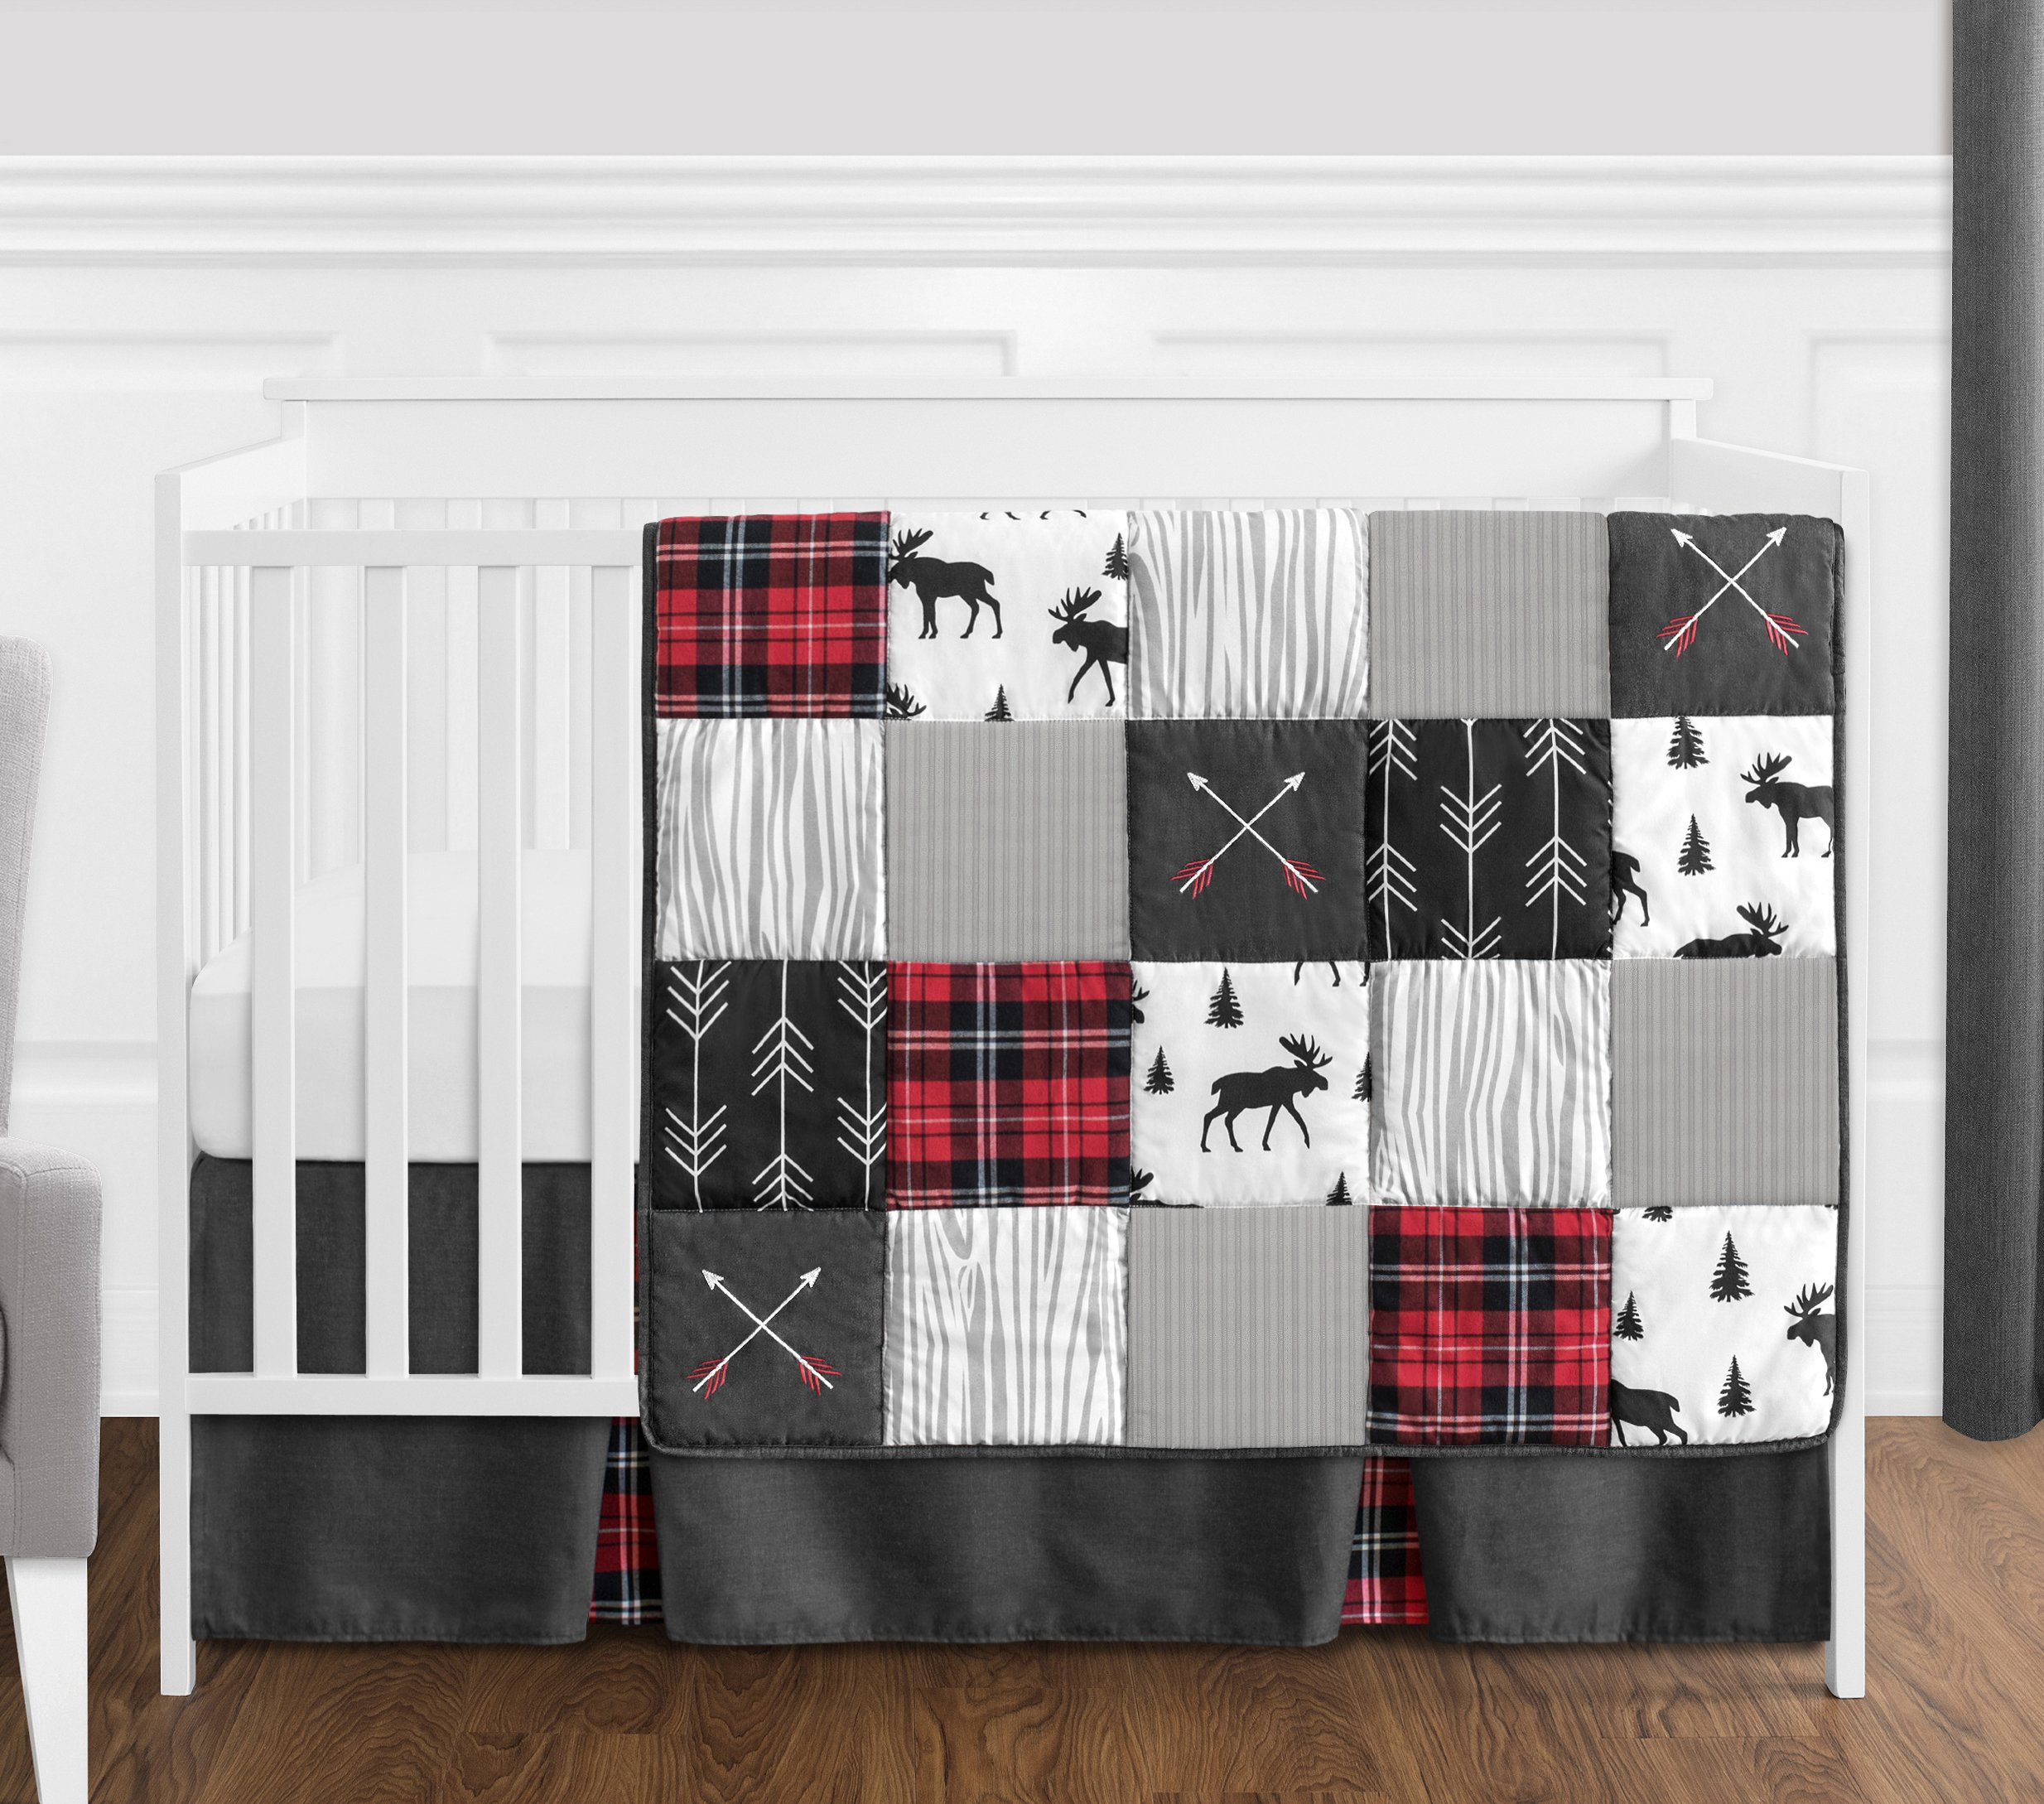 Sweet Jojo Designs Grey, Black and Red Woodland Plaid and Arrow Rustic Patch Baby Boy Crib Bedding Set Without Bumper - 4 Pieces - Flannel Moose Gray by Sweet Jojo Designs